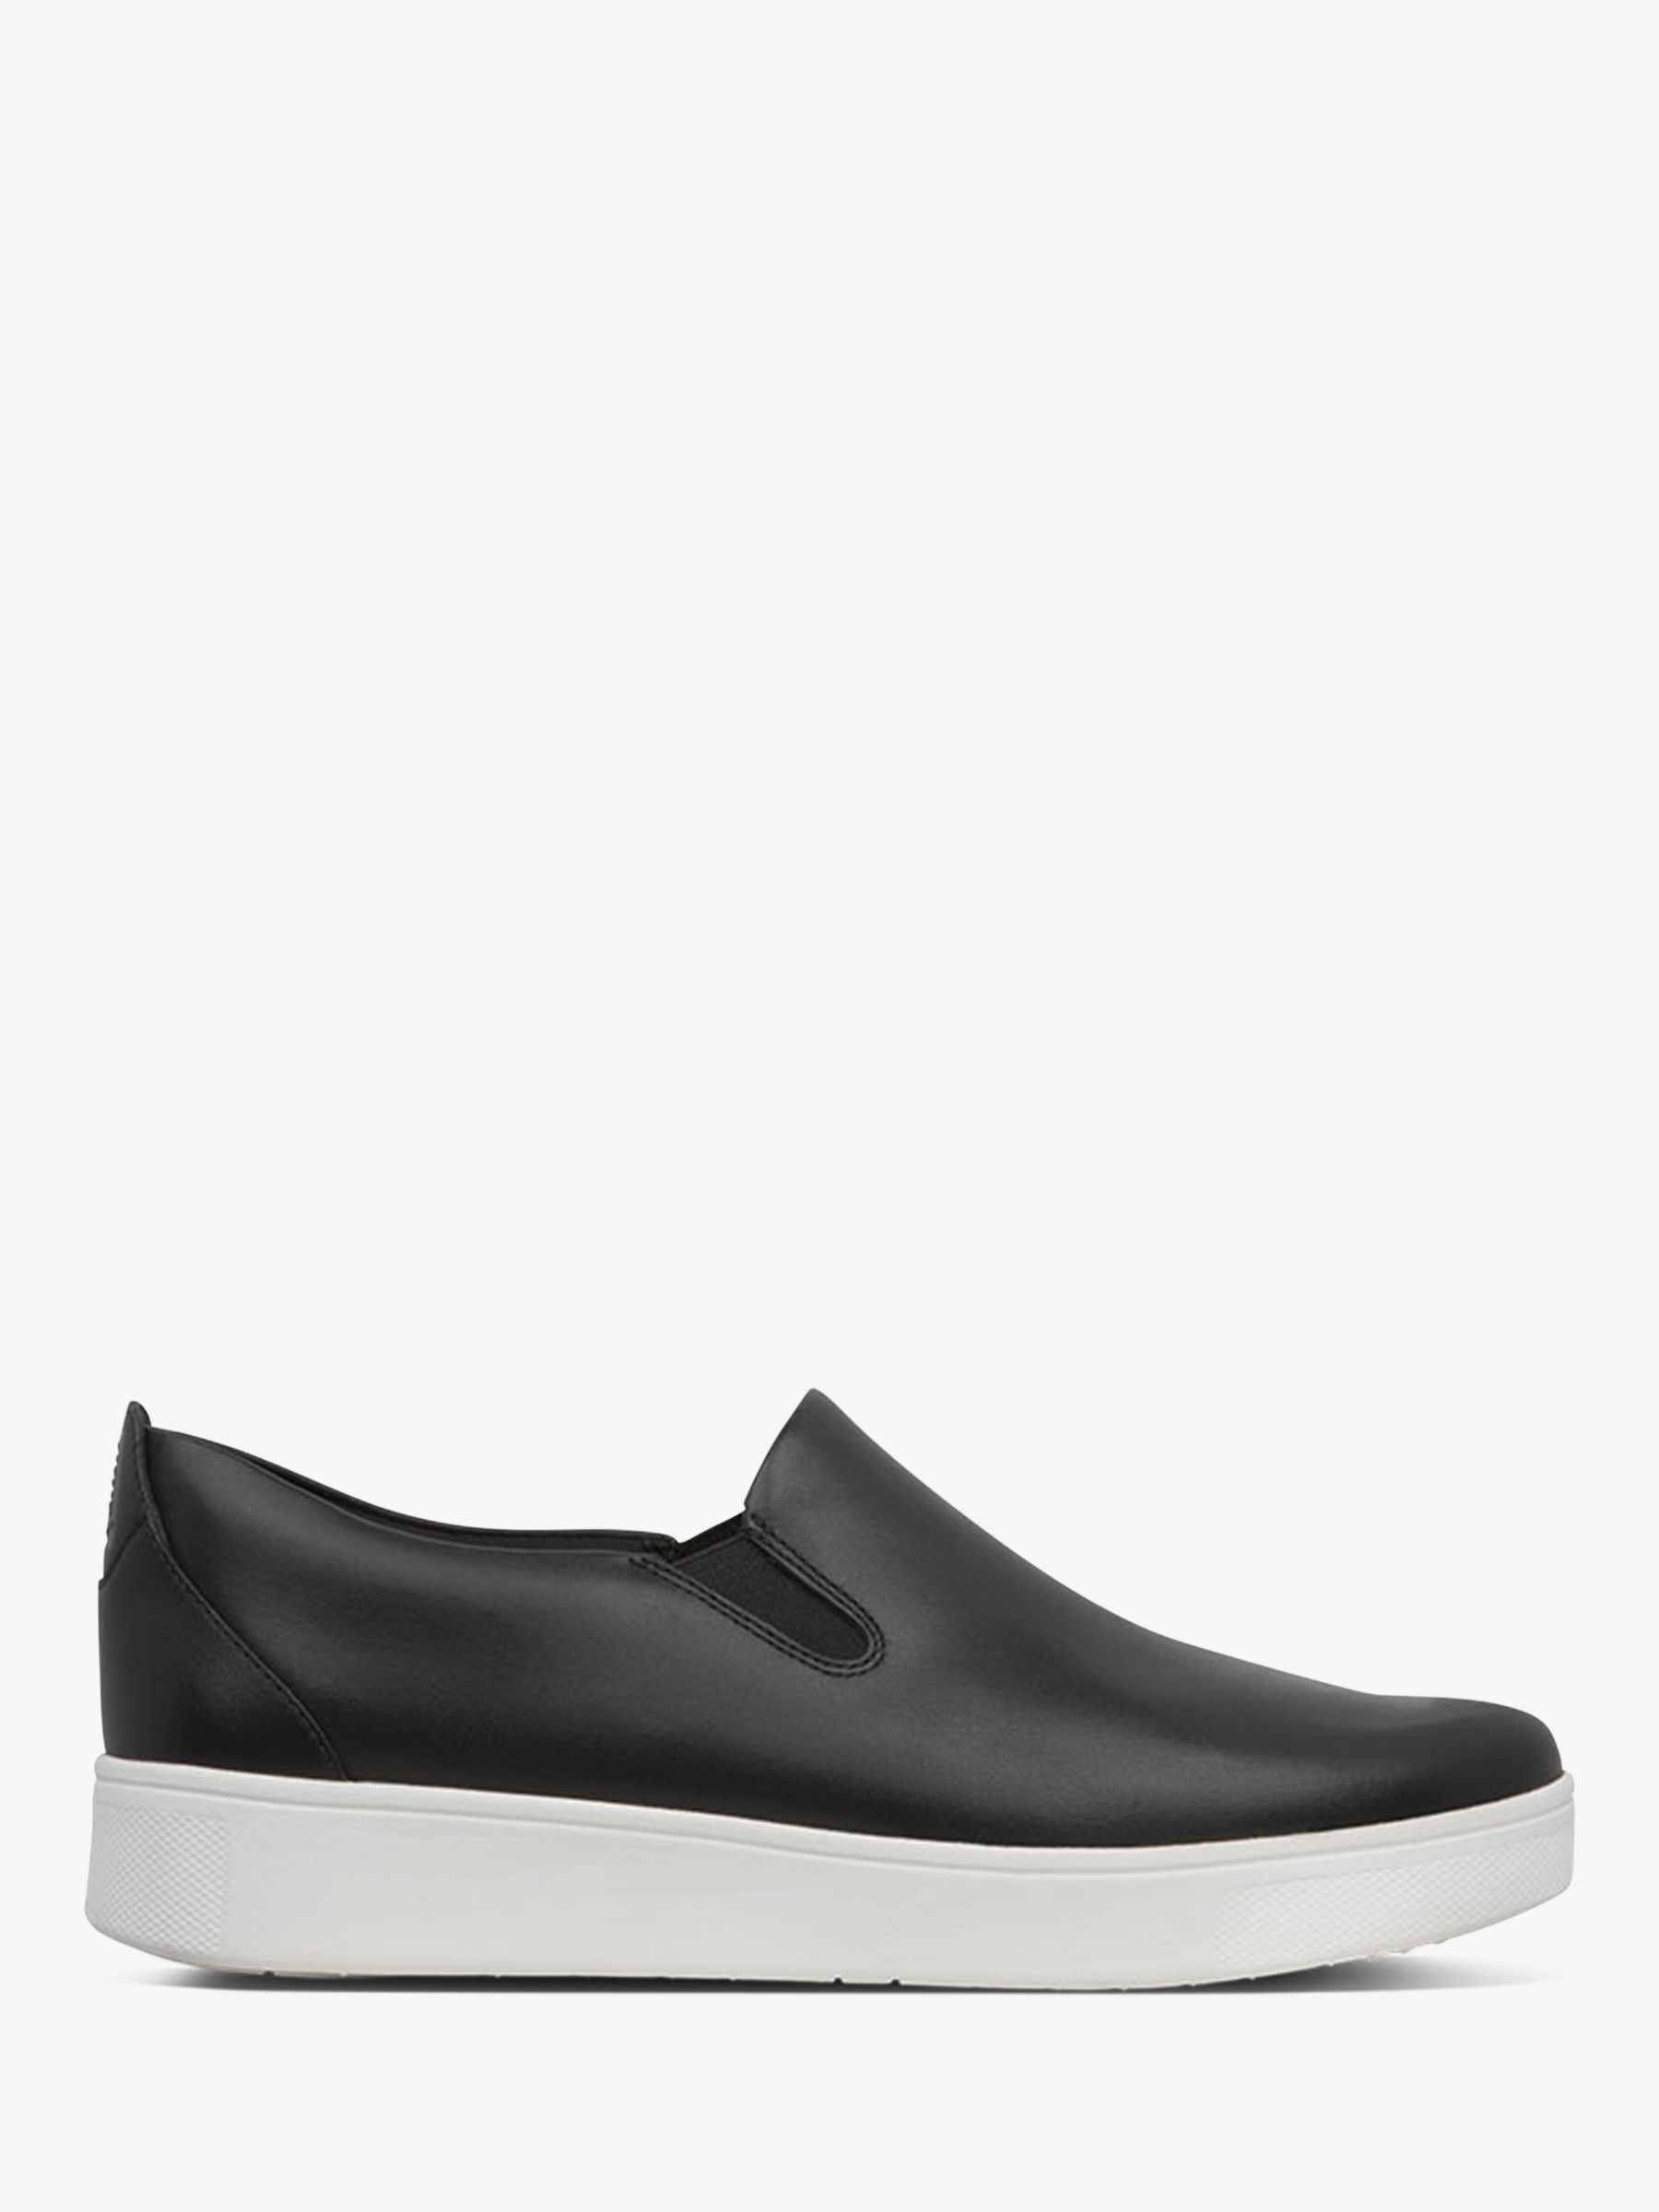 Fitflop FitFlop Sania Skate Leather Slip-On Trainers, Black